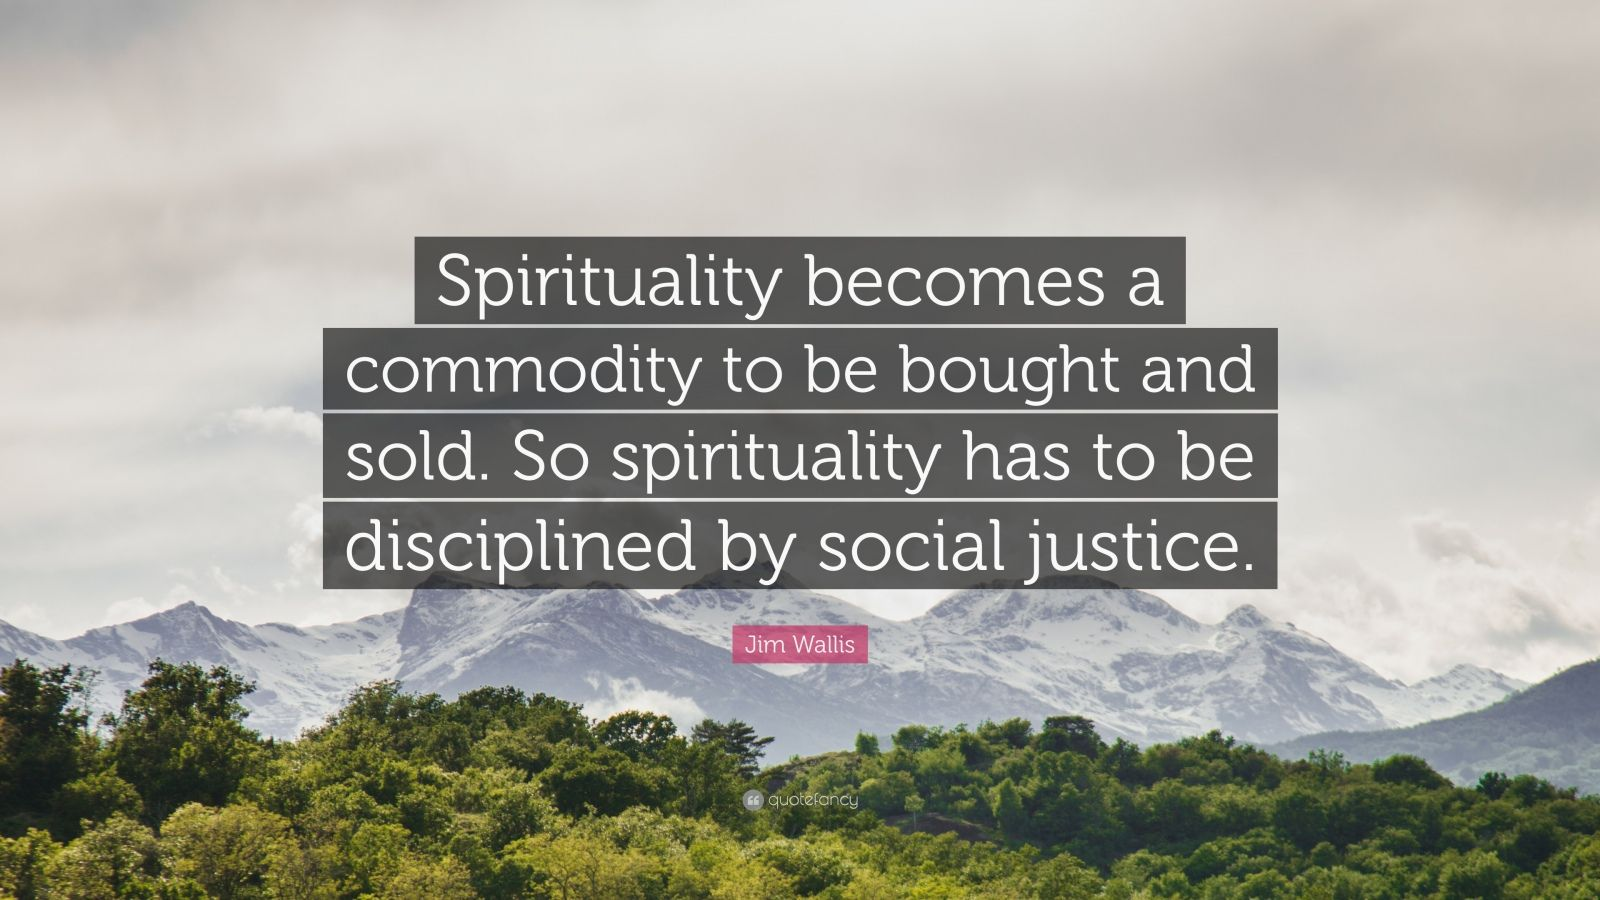 """Jim Wallis Quote: """"Spirituality becomes a commodity to be bought and sold. So spirituality has to be disciplined by social justice."""""""